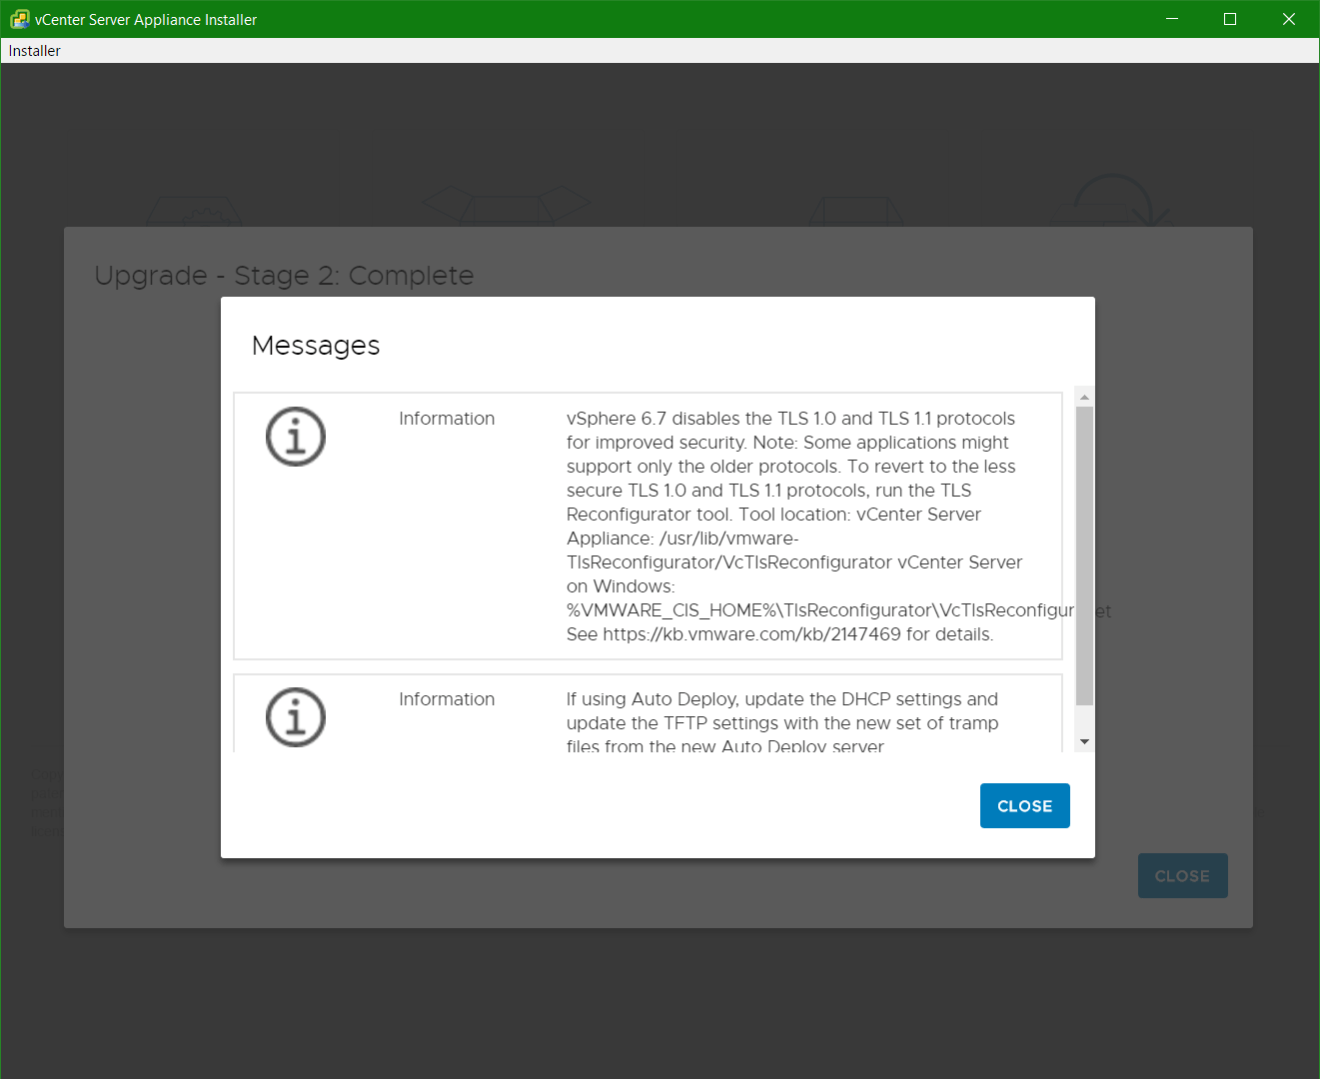 domalab.com vmware vcsa upgrade stage 2 messages